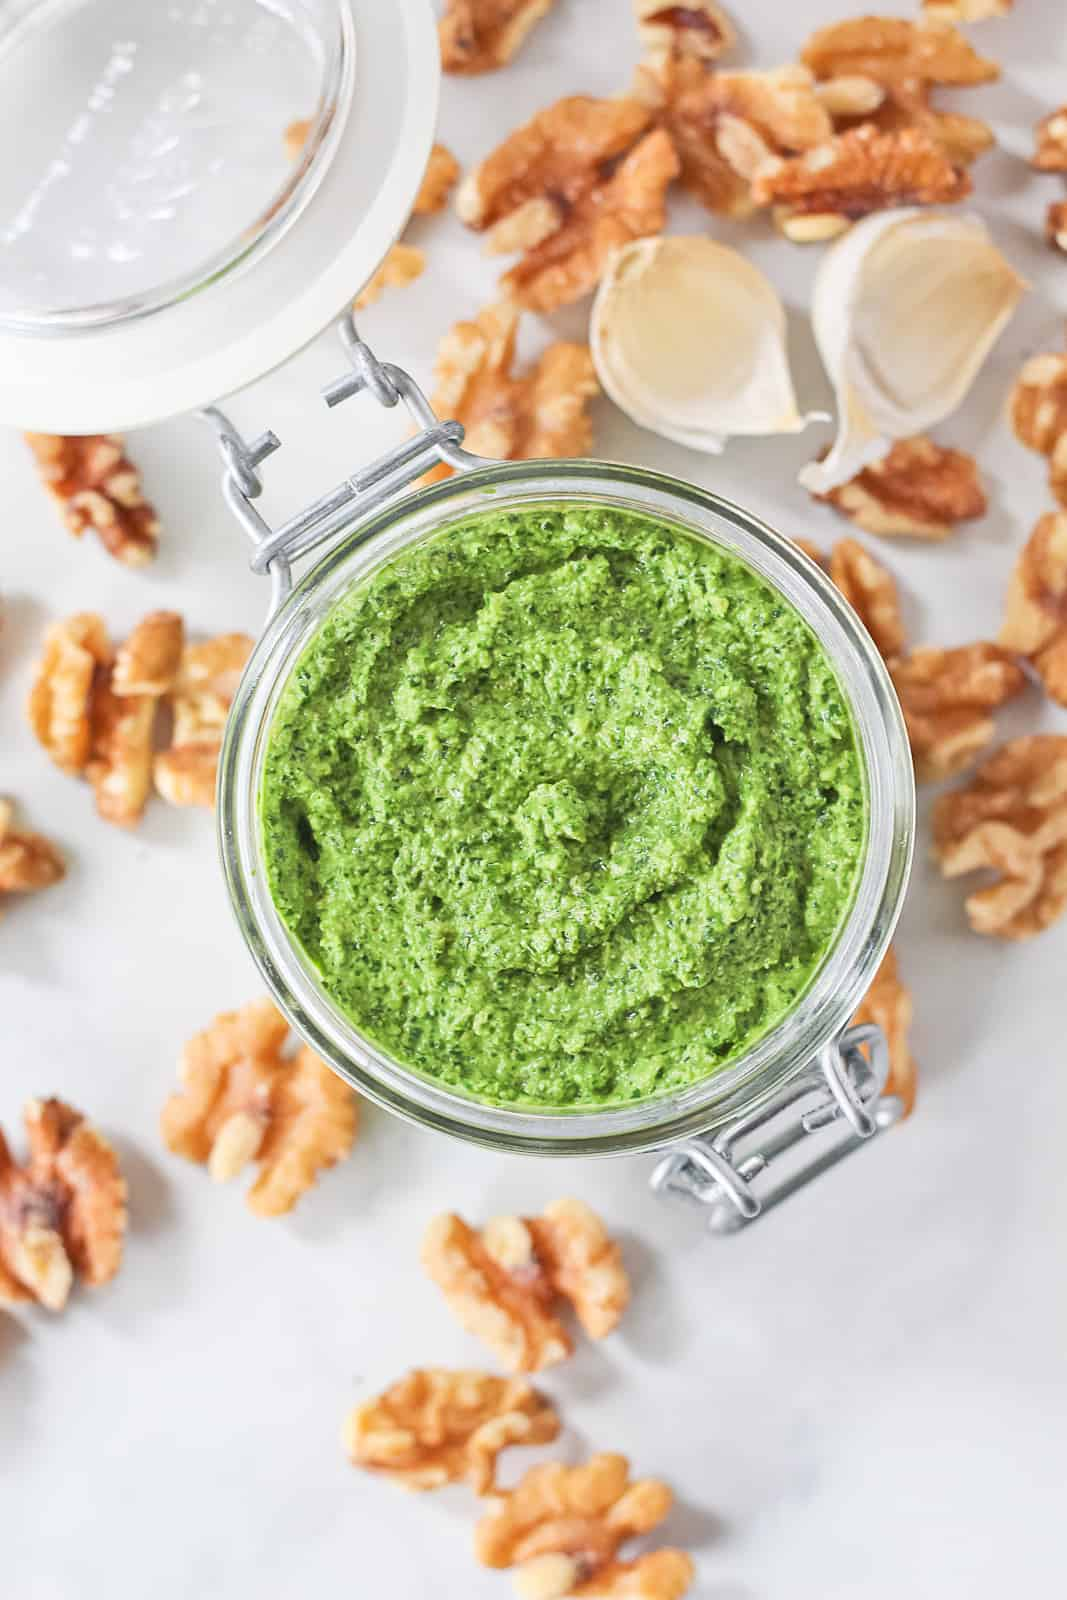 Arugula Pesto in a small glass jar surrounded by walnuts and garlic.